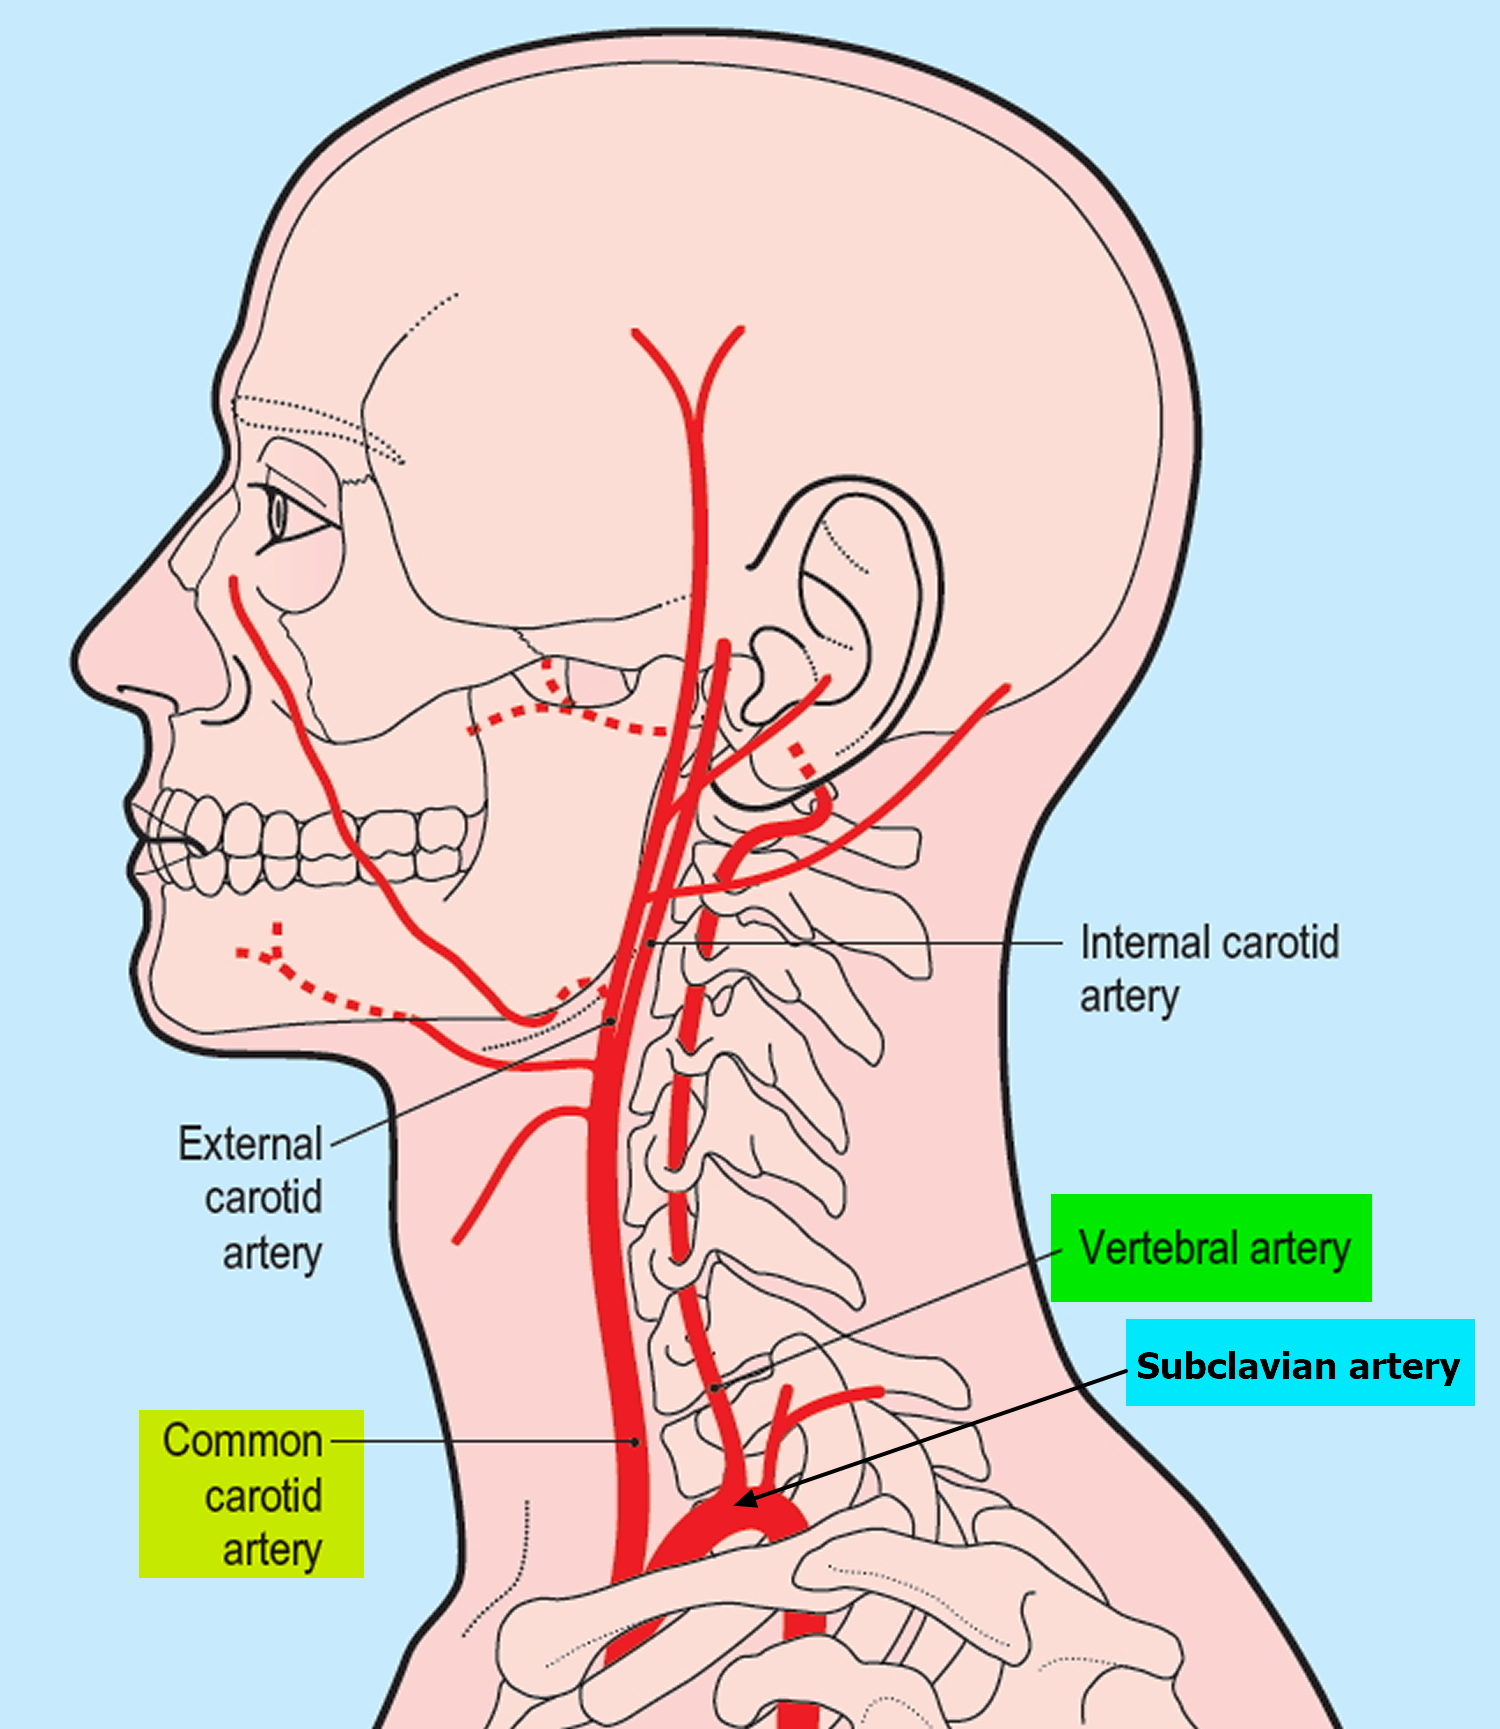 Vertebral Artery Segments, Stenosis and Artery Dissection Symptoms